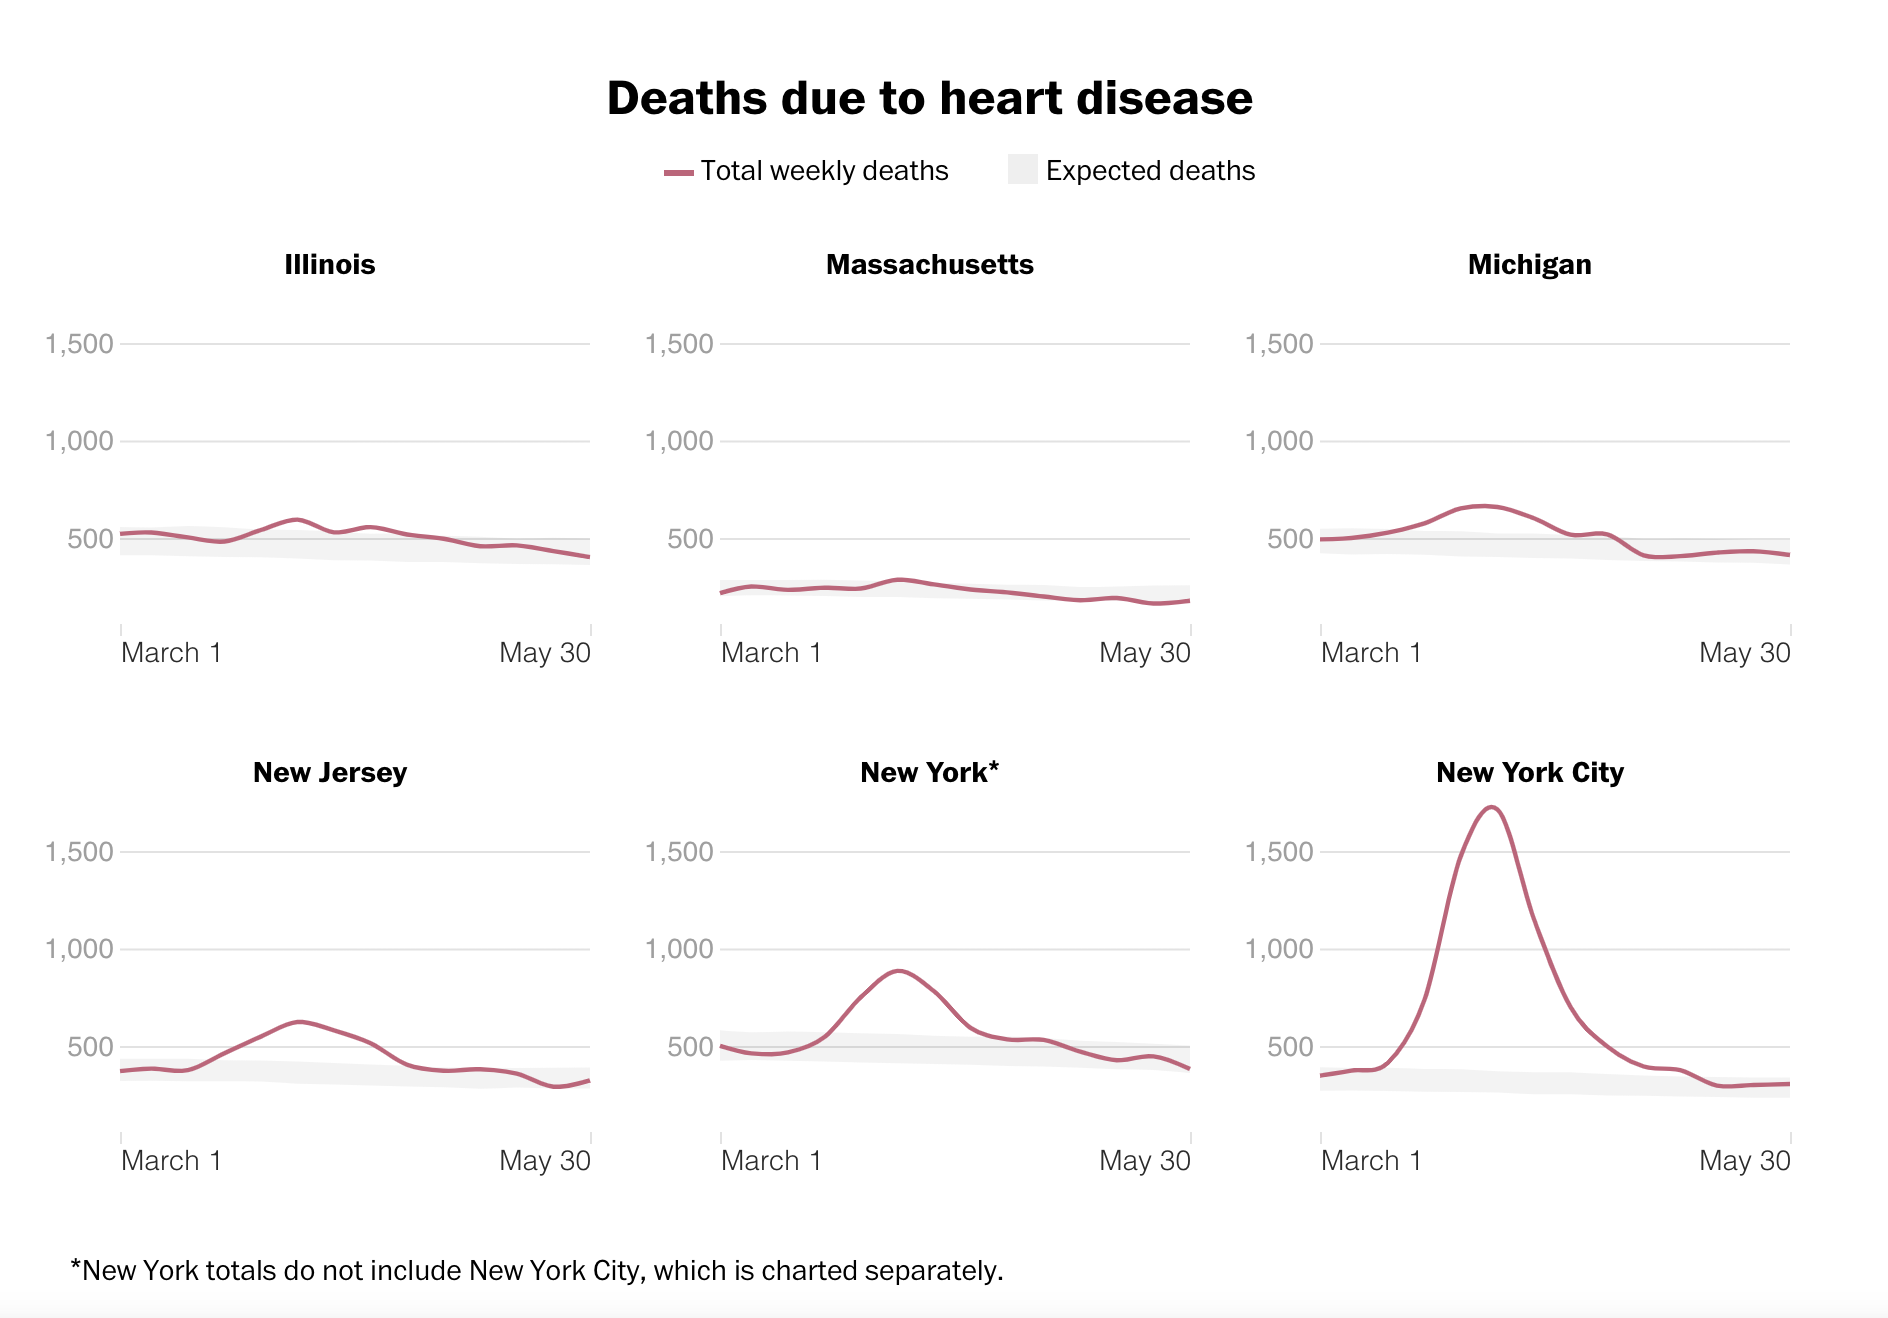 Deaths due to heart disease 2020